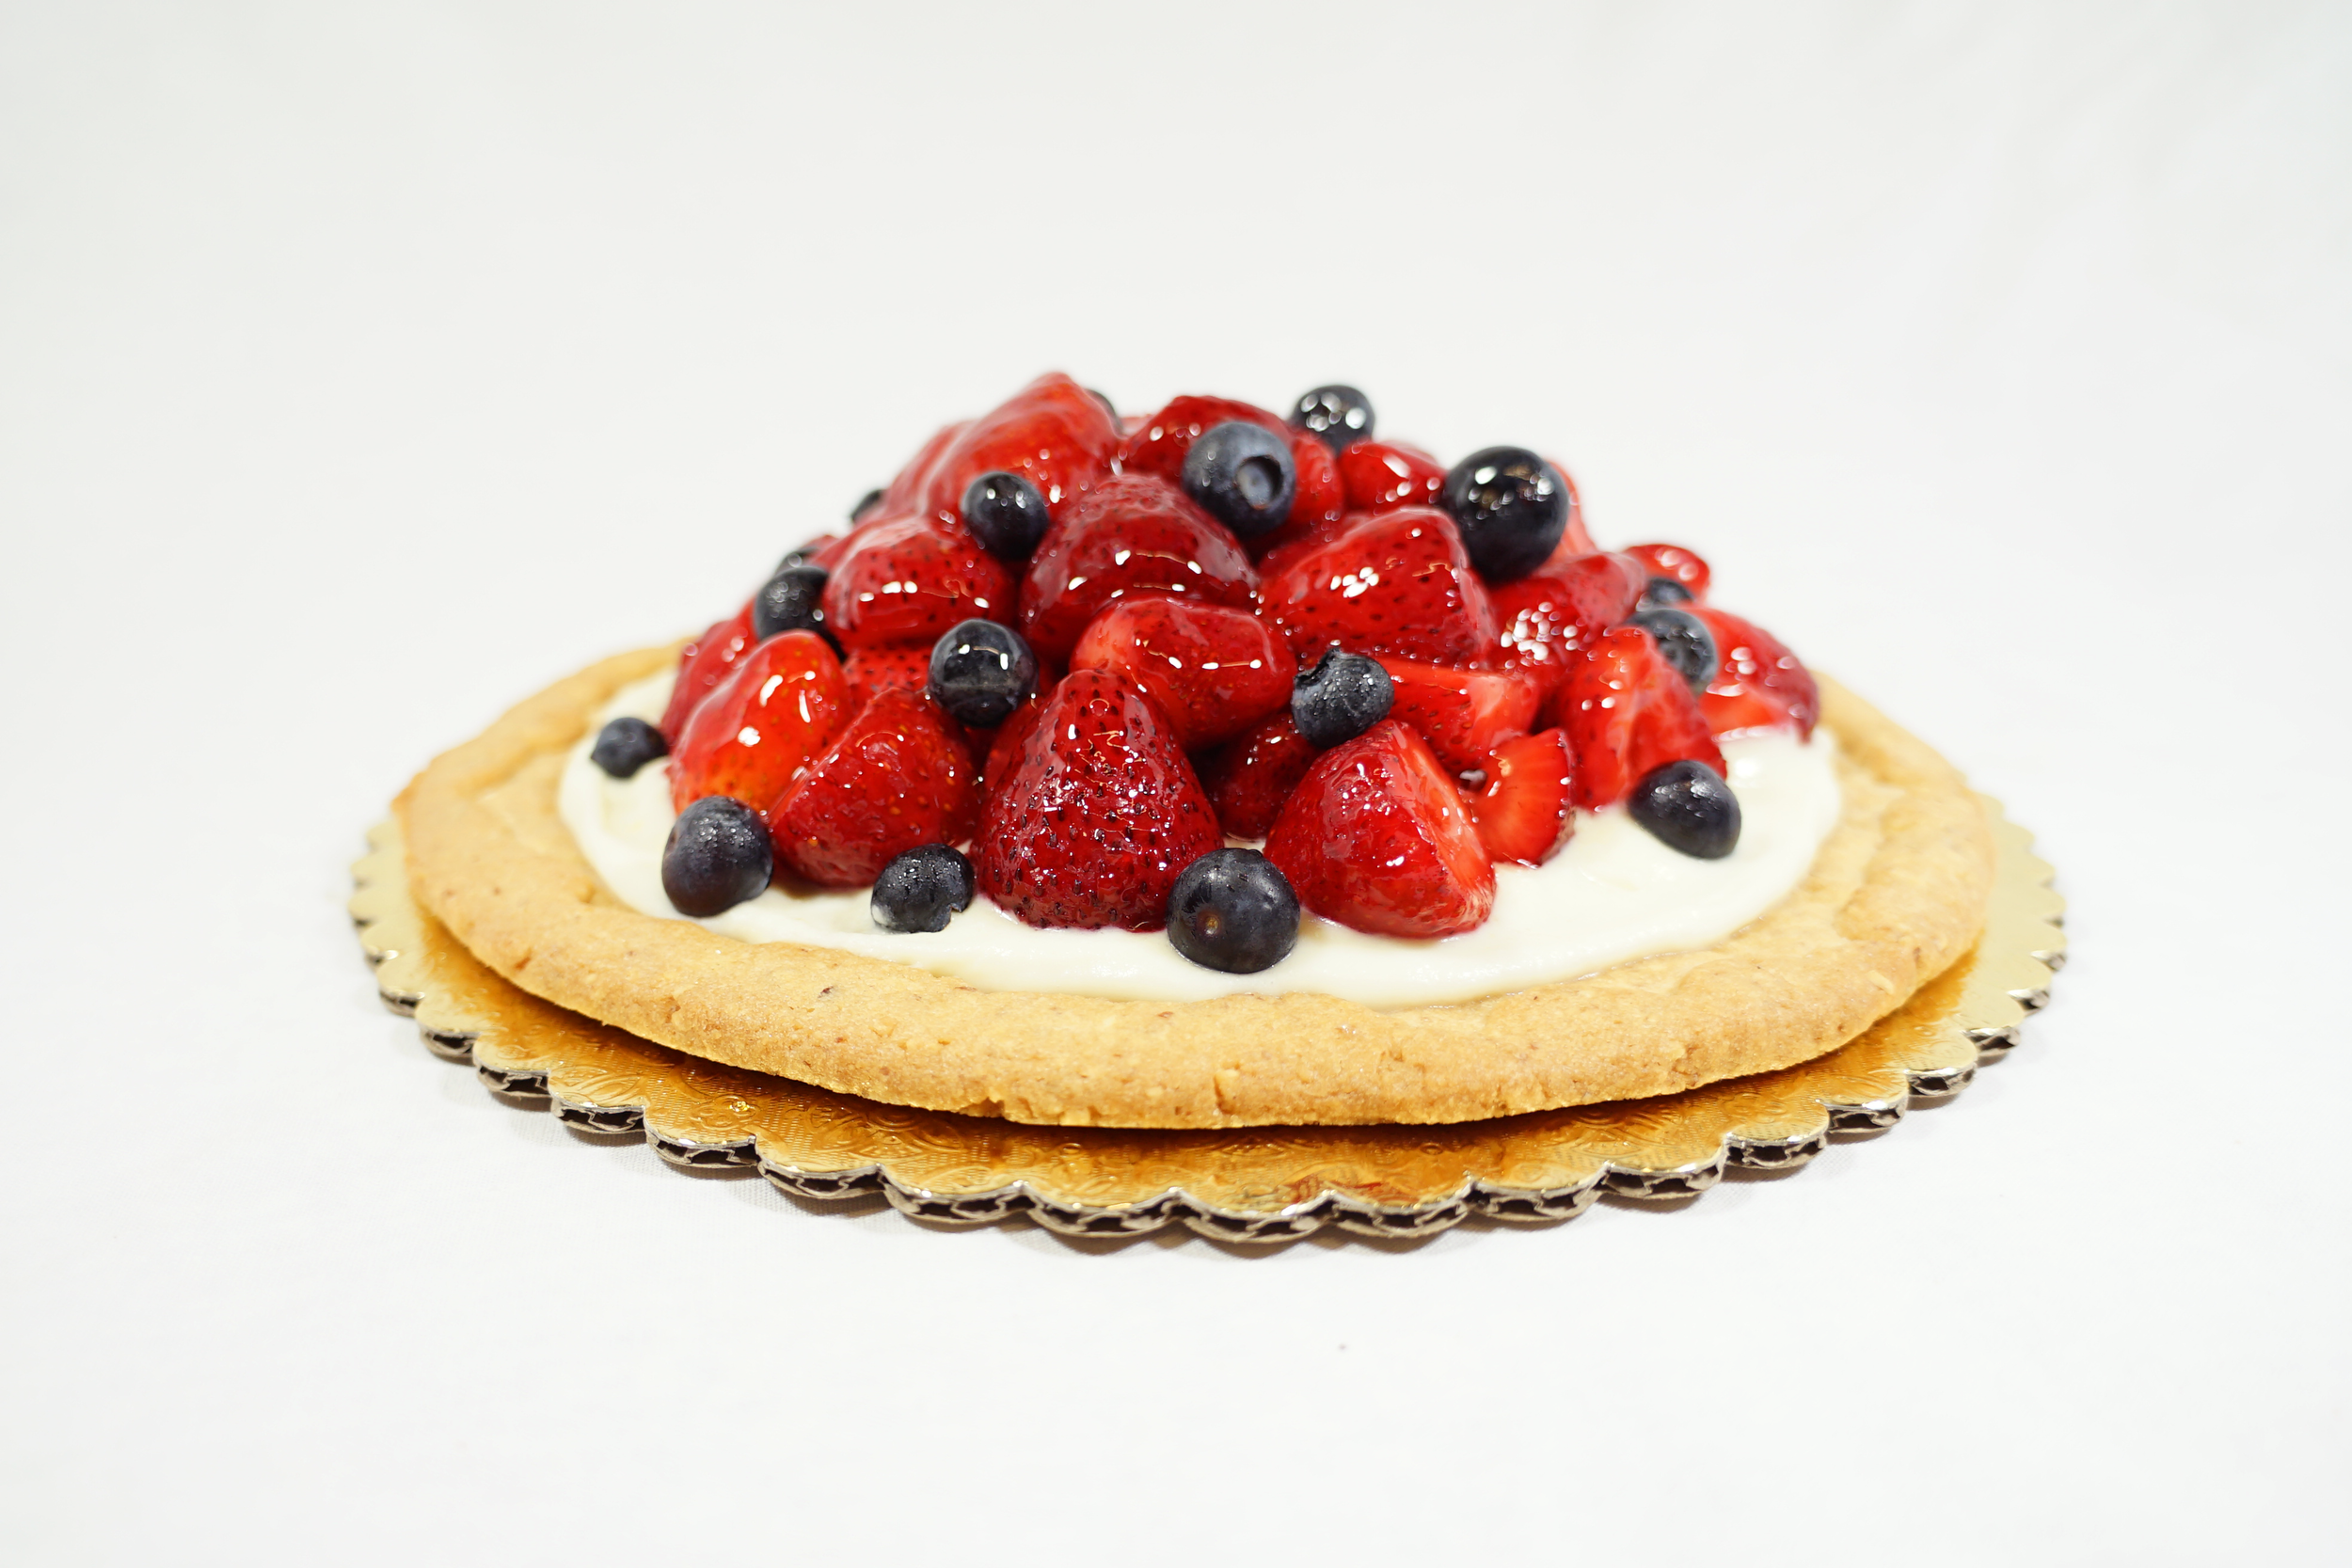 Strawberry Pizza - A sweet almond tart shell with sweetened mascarpone filling. Topped with a mix of fresh sliced strawberries, blueberries and strawberry puree.